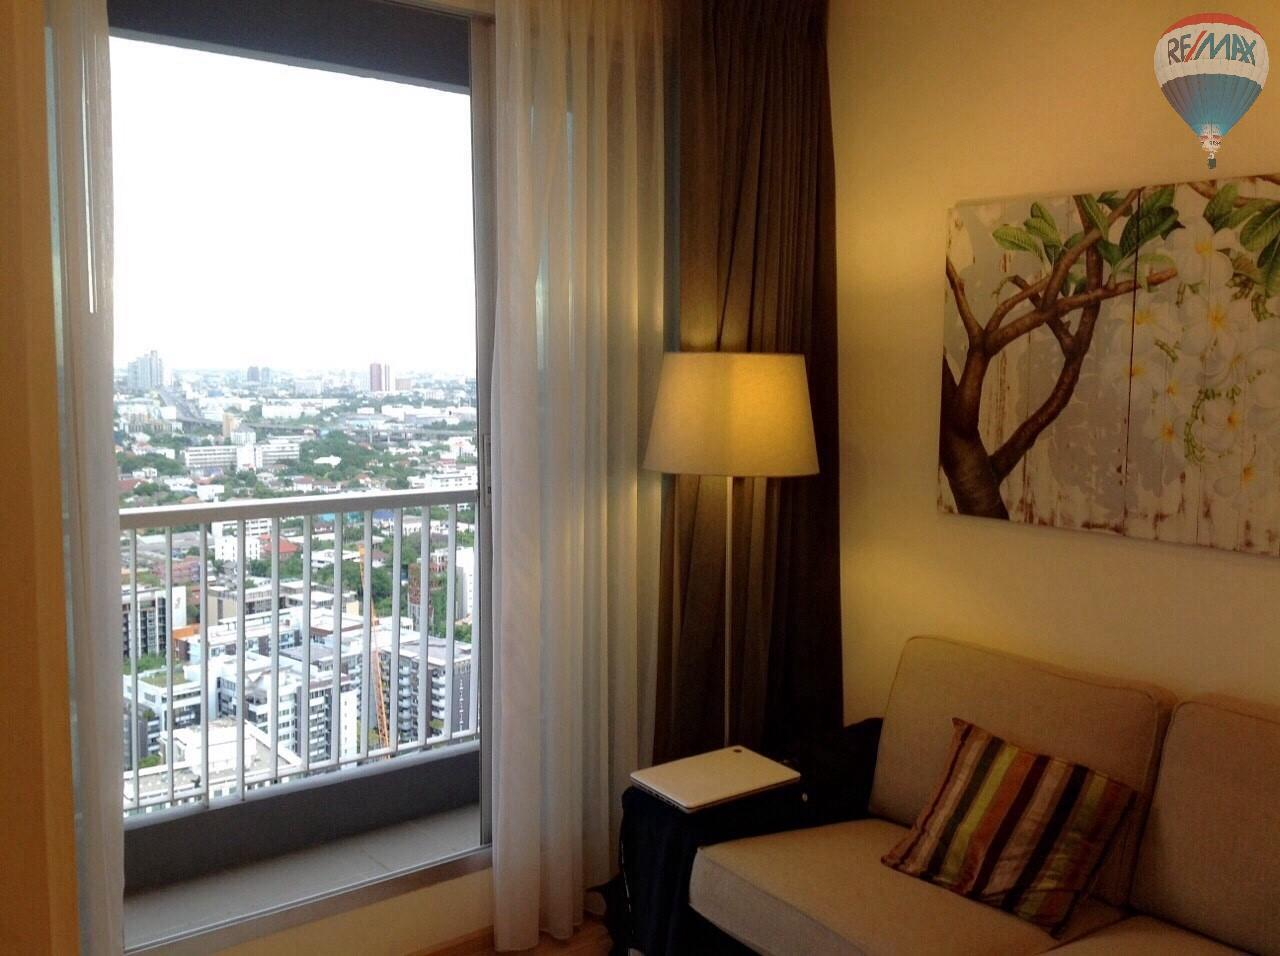 RE/MAX Properties Agency's 1 bedroom 45 Sq.M. for renting 32,000 THB in Rhythm Sukhumvit 2